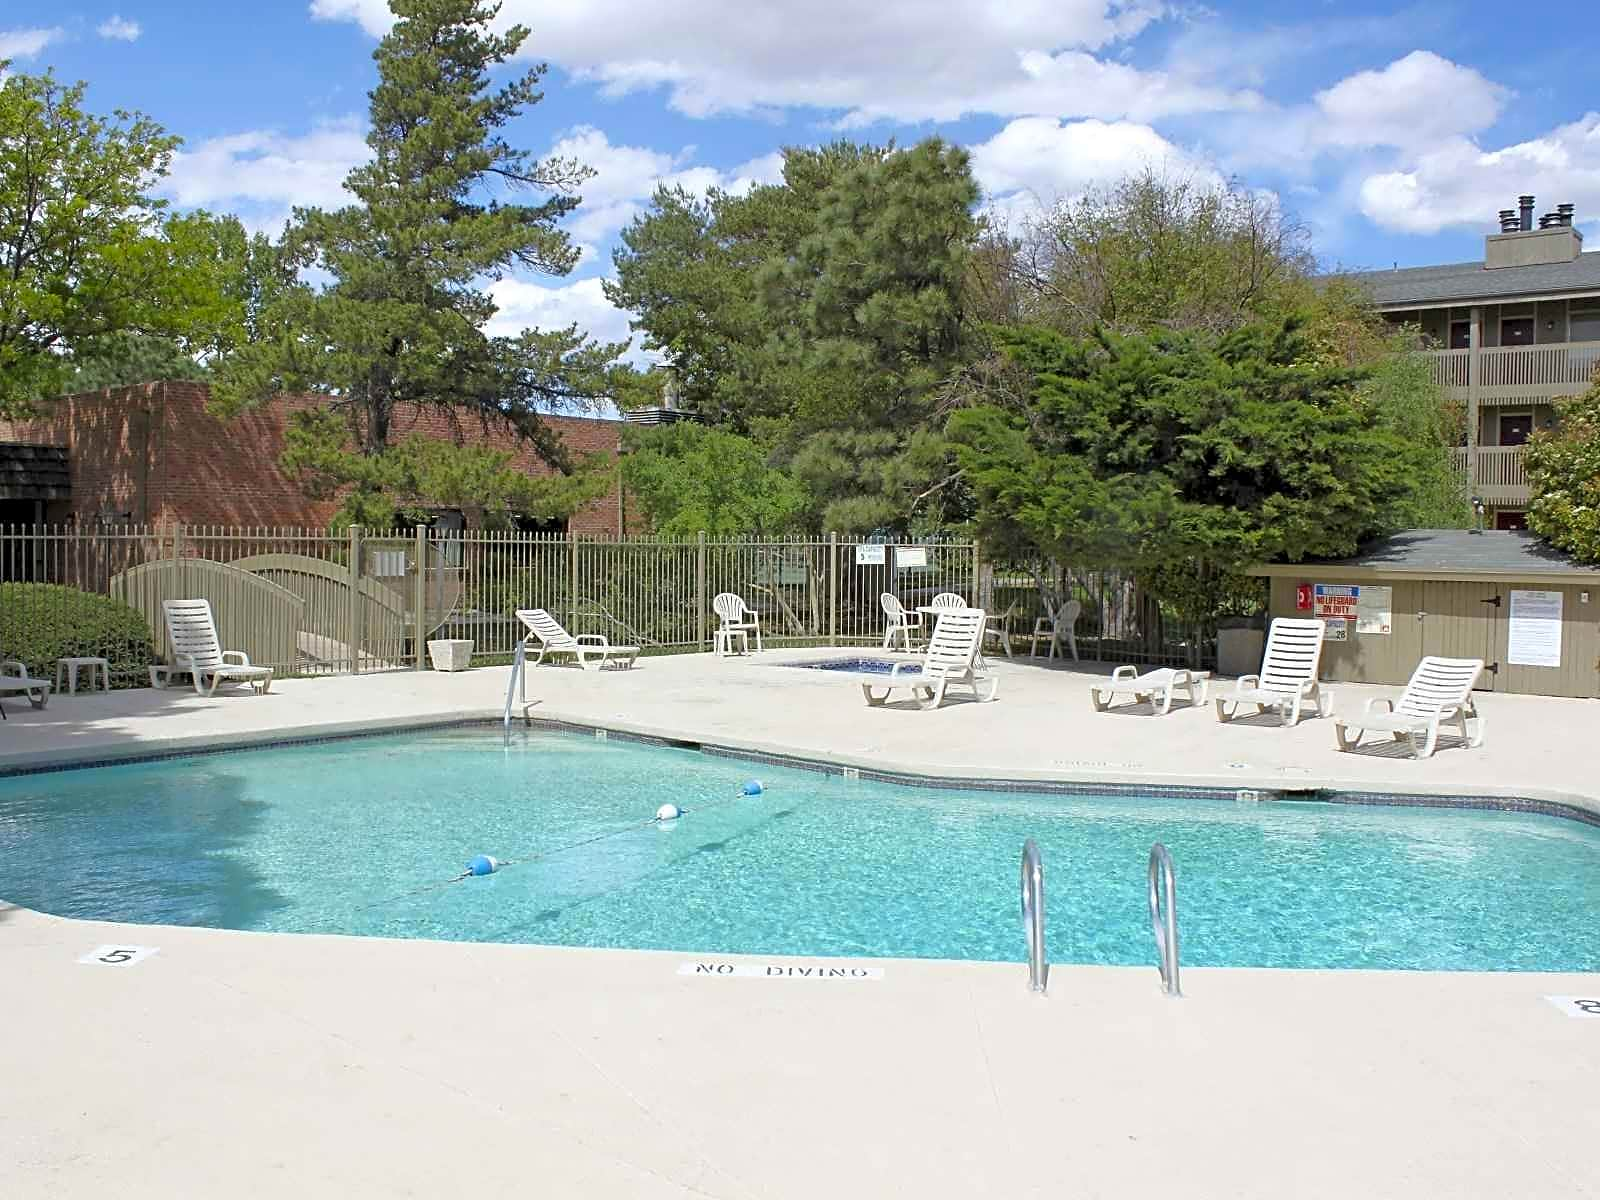 Apartments Near New Mexico The Lakes for University of New Mexico Students in Albuquerque, NM